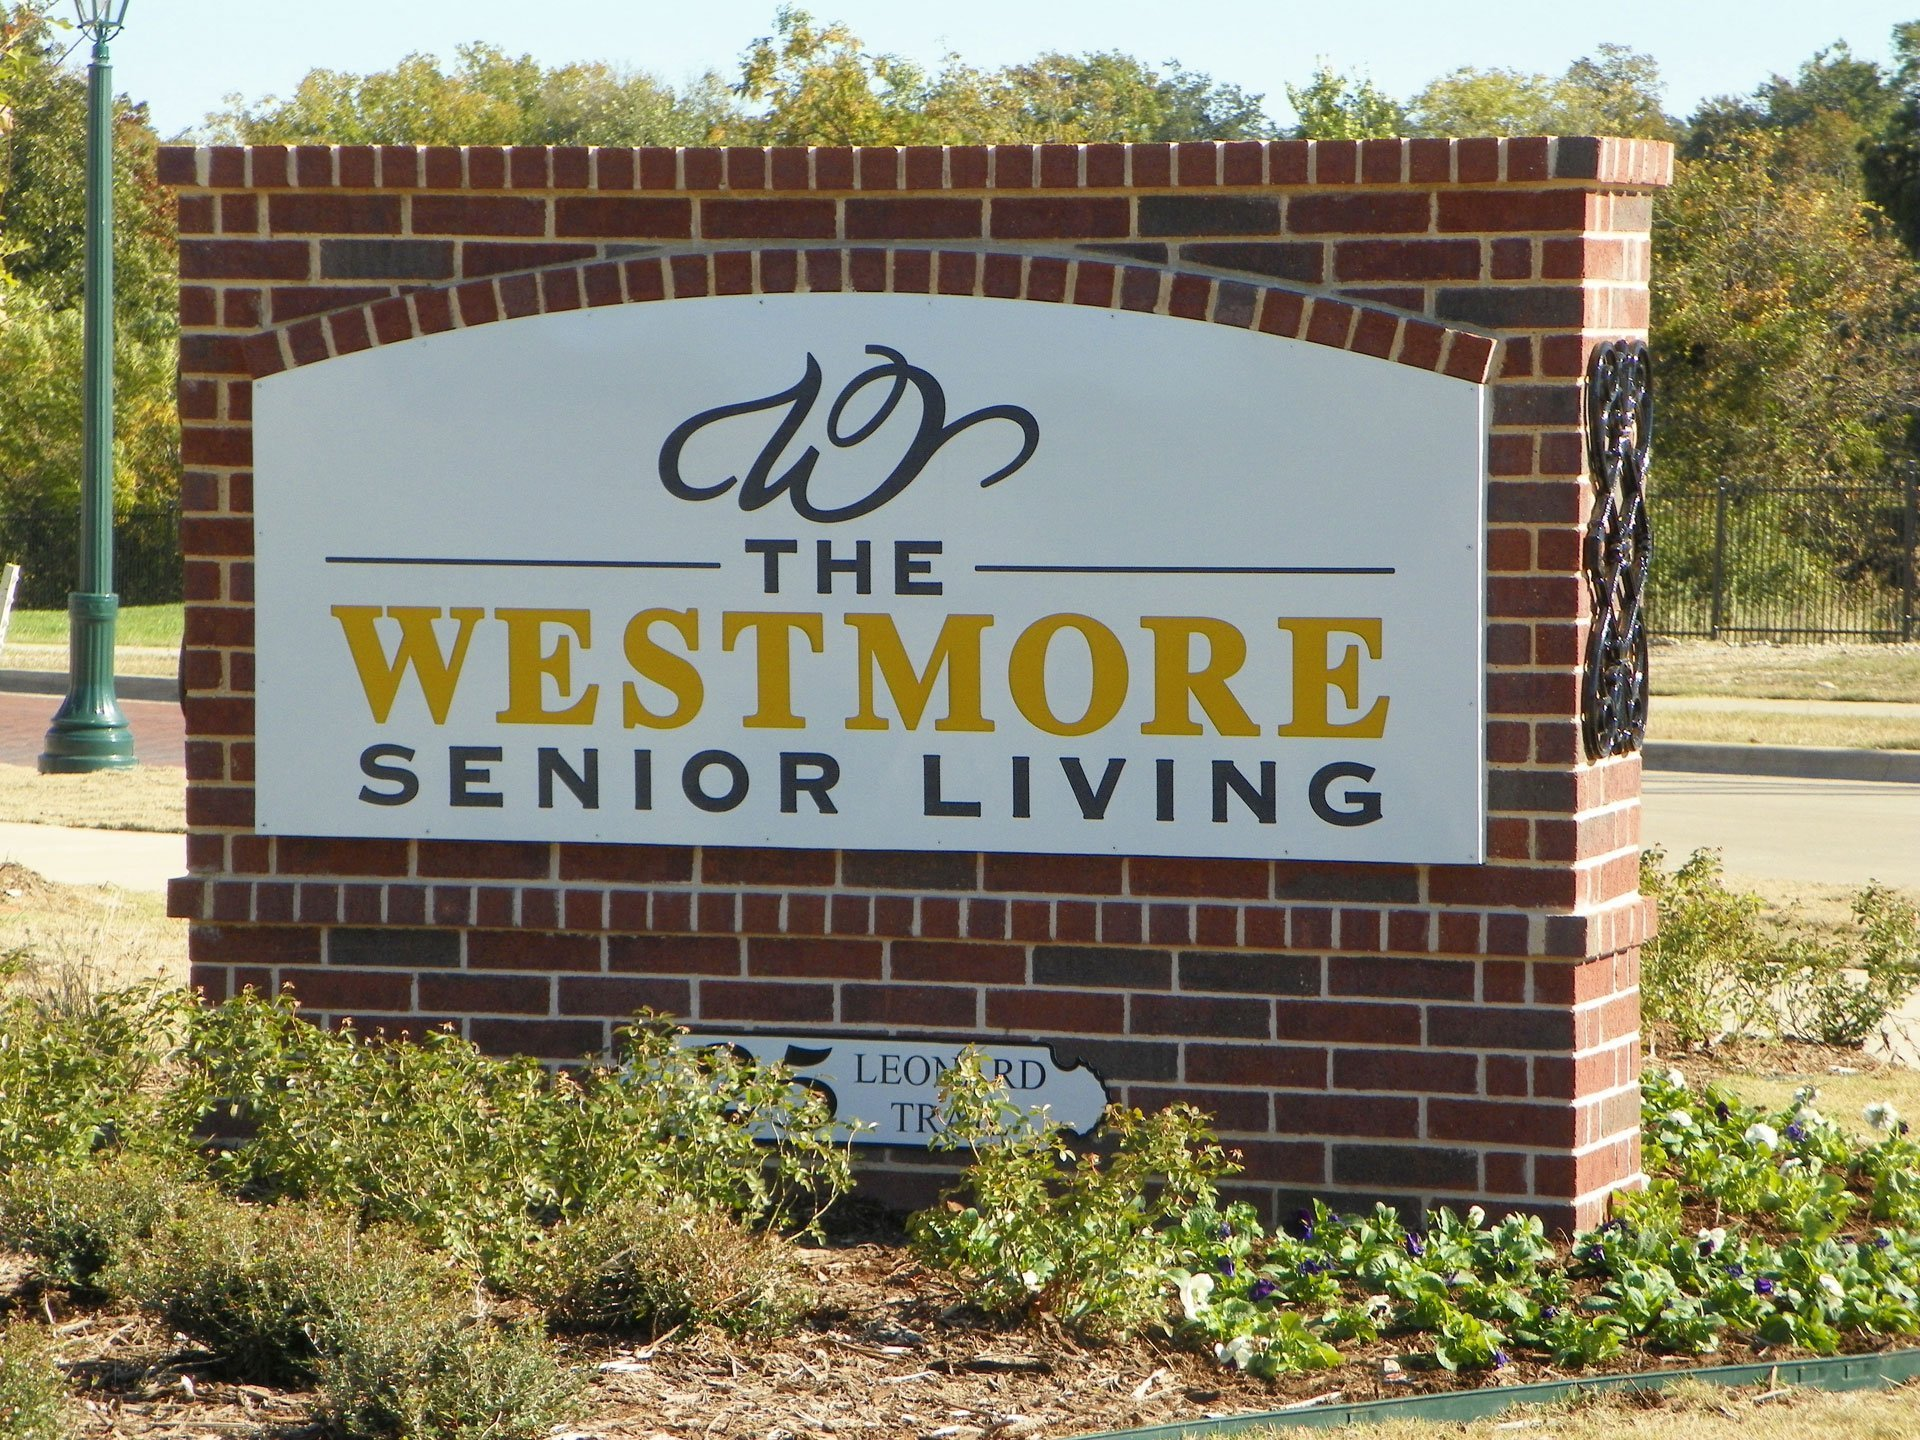 Westmore Senior Living Sign